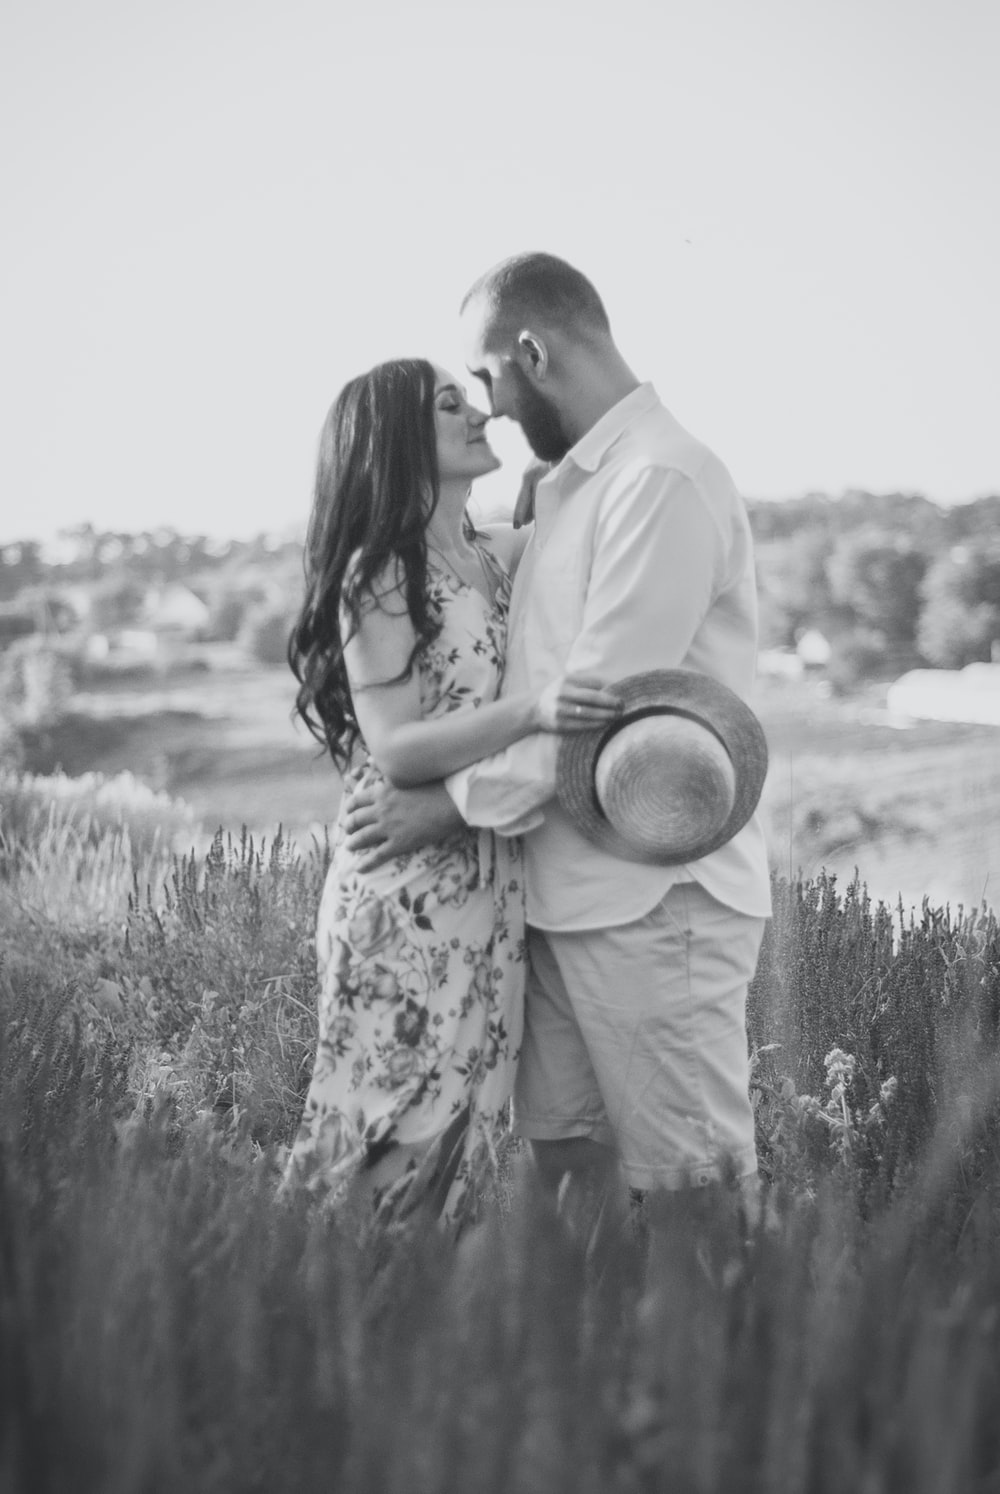 man and woman kissing on grass field in grayscale photography